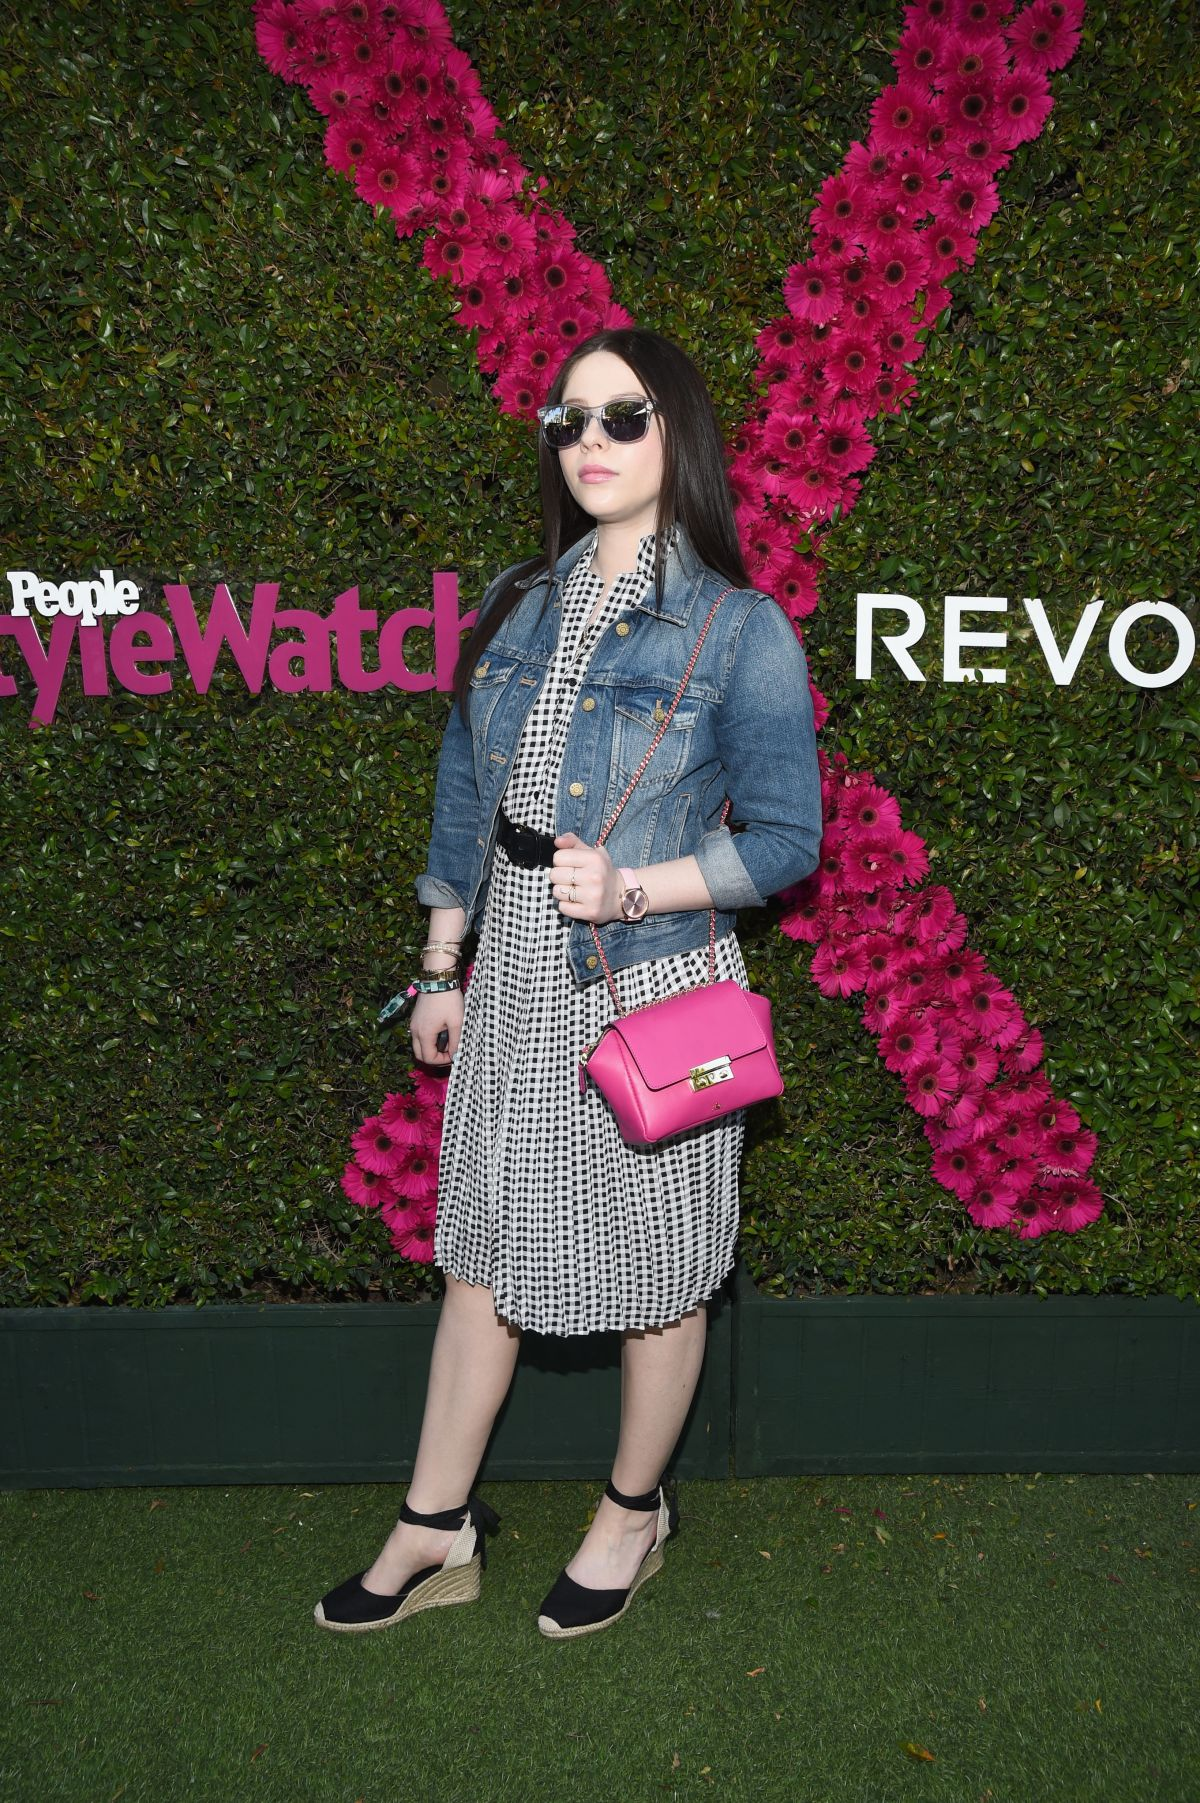 MICHELLE TRACHTENBERG at People Stylewatch & Revolve Fashion and Festival Event in Palm Springs